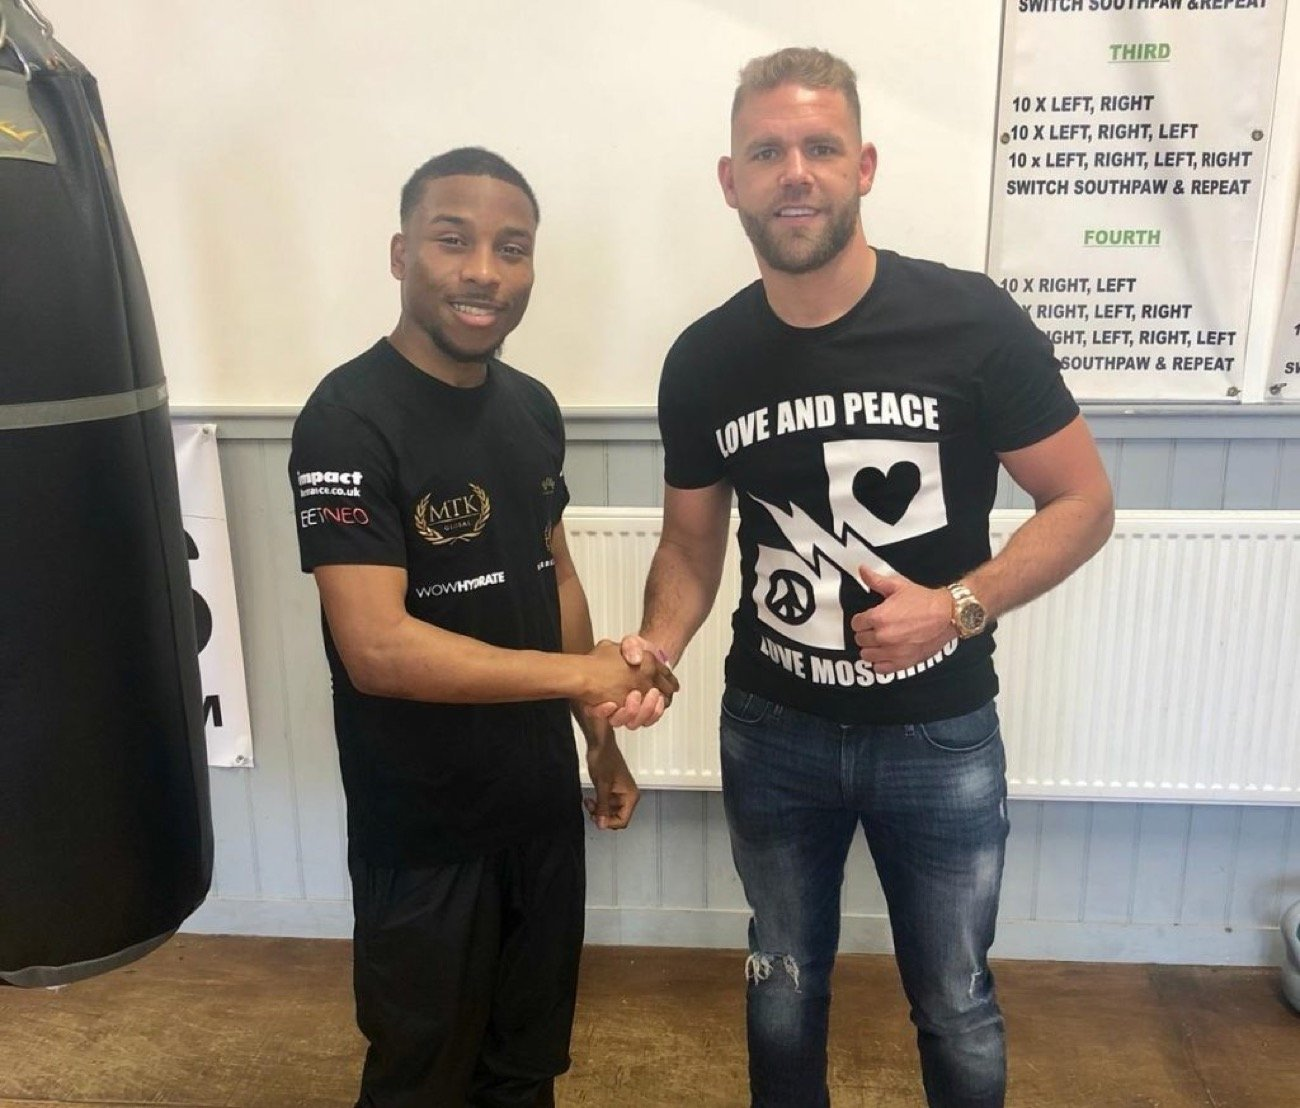 Billy Joe Saunders - Dixon has won 32 of his 34 amateur contests, stopping 17 in the process, and has won two National Championships, seven Yorkshire Championships and one Box Cup Championship.